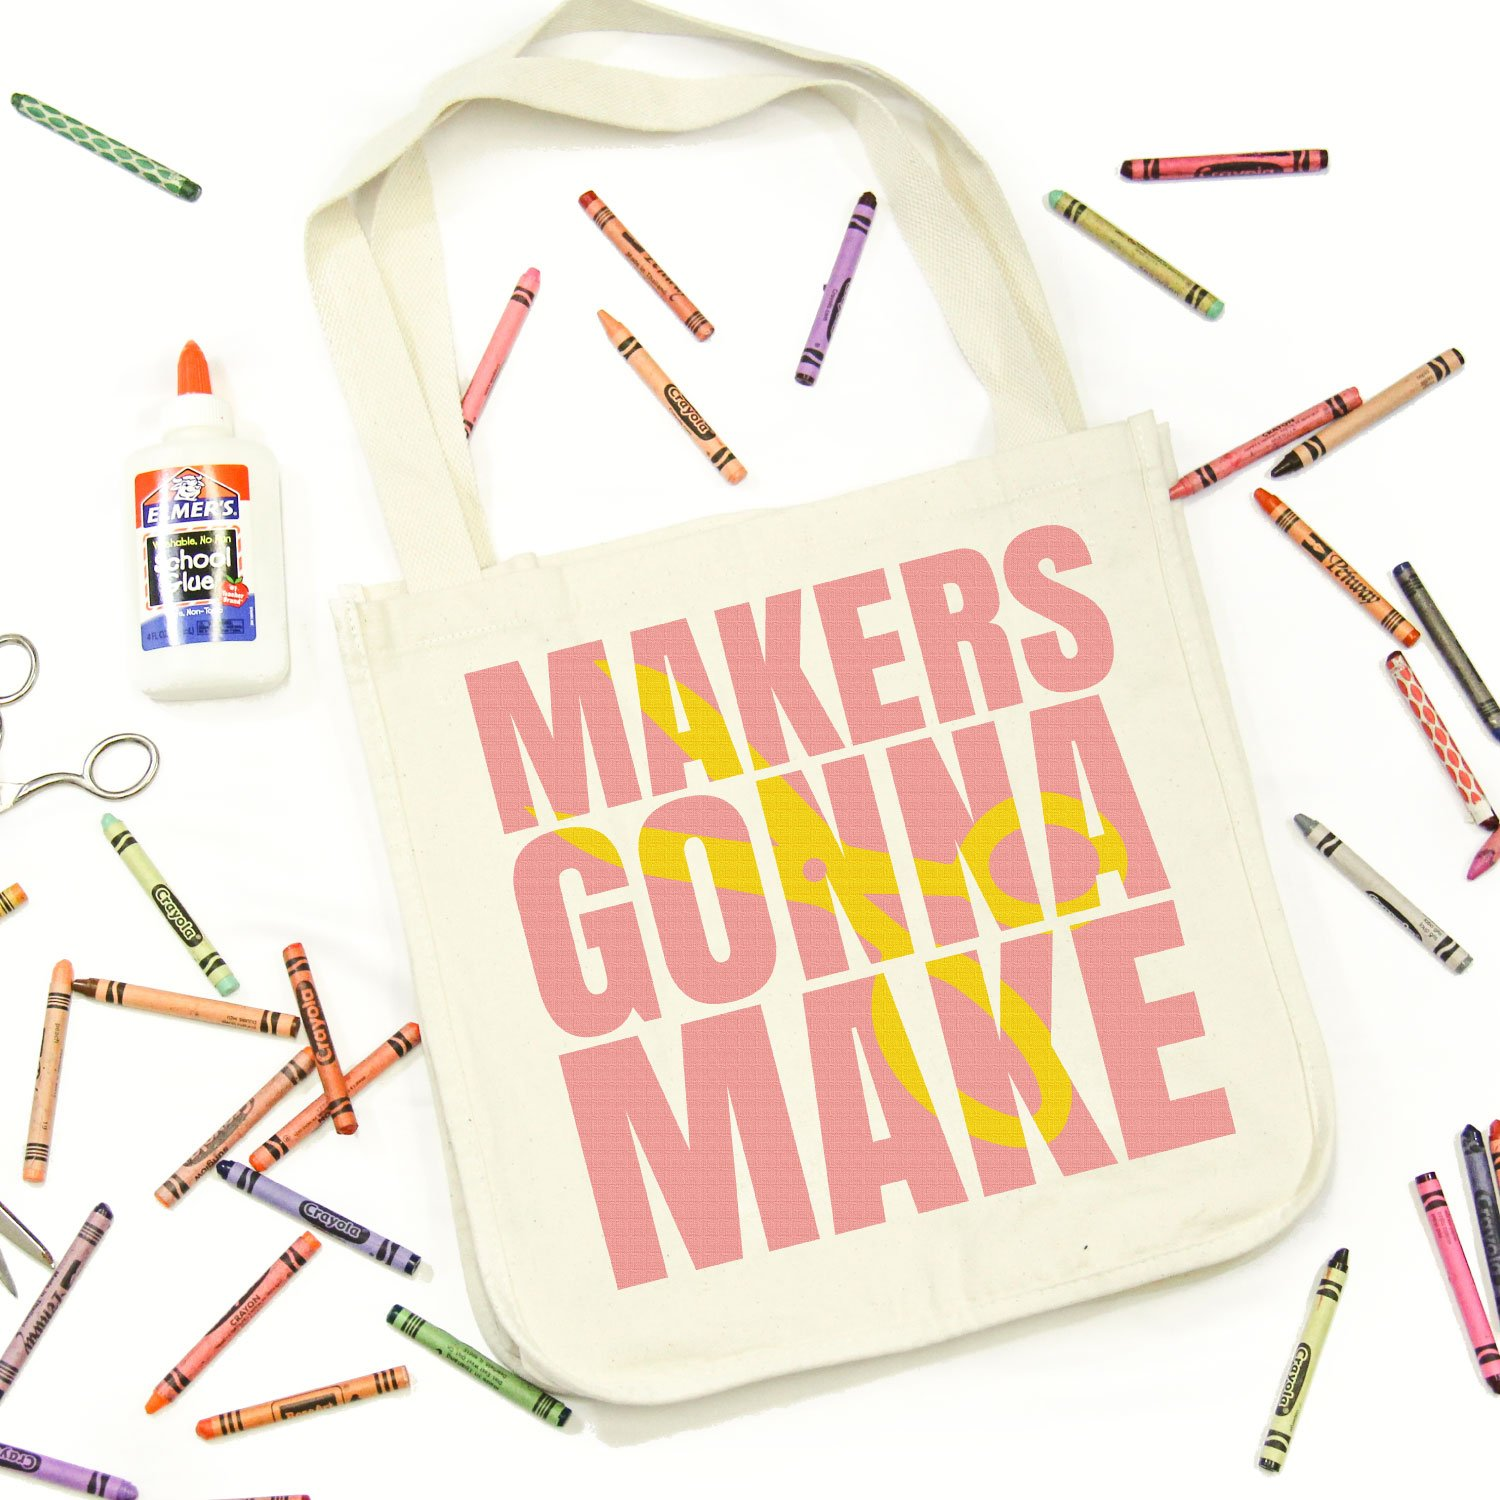 Makers Gonna Make knockout design on tote bag